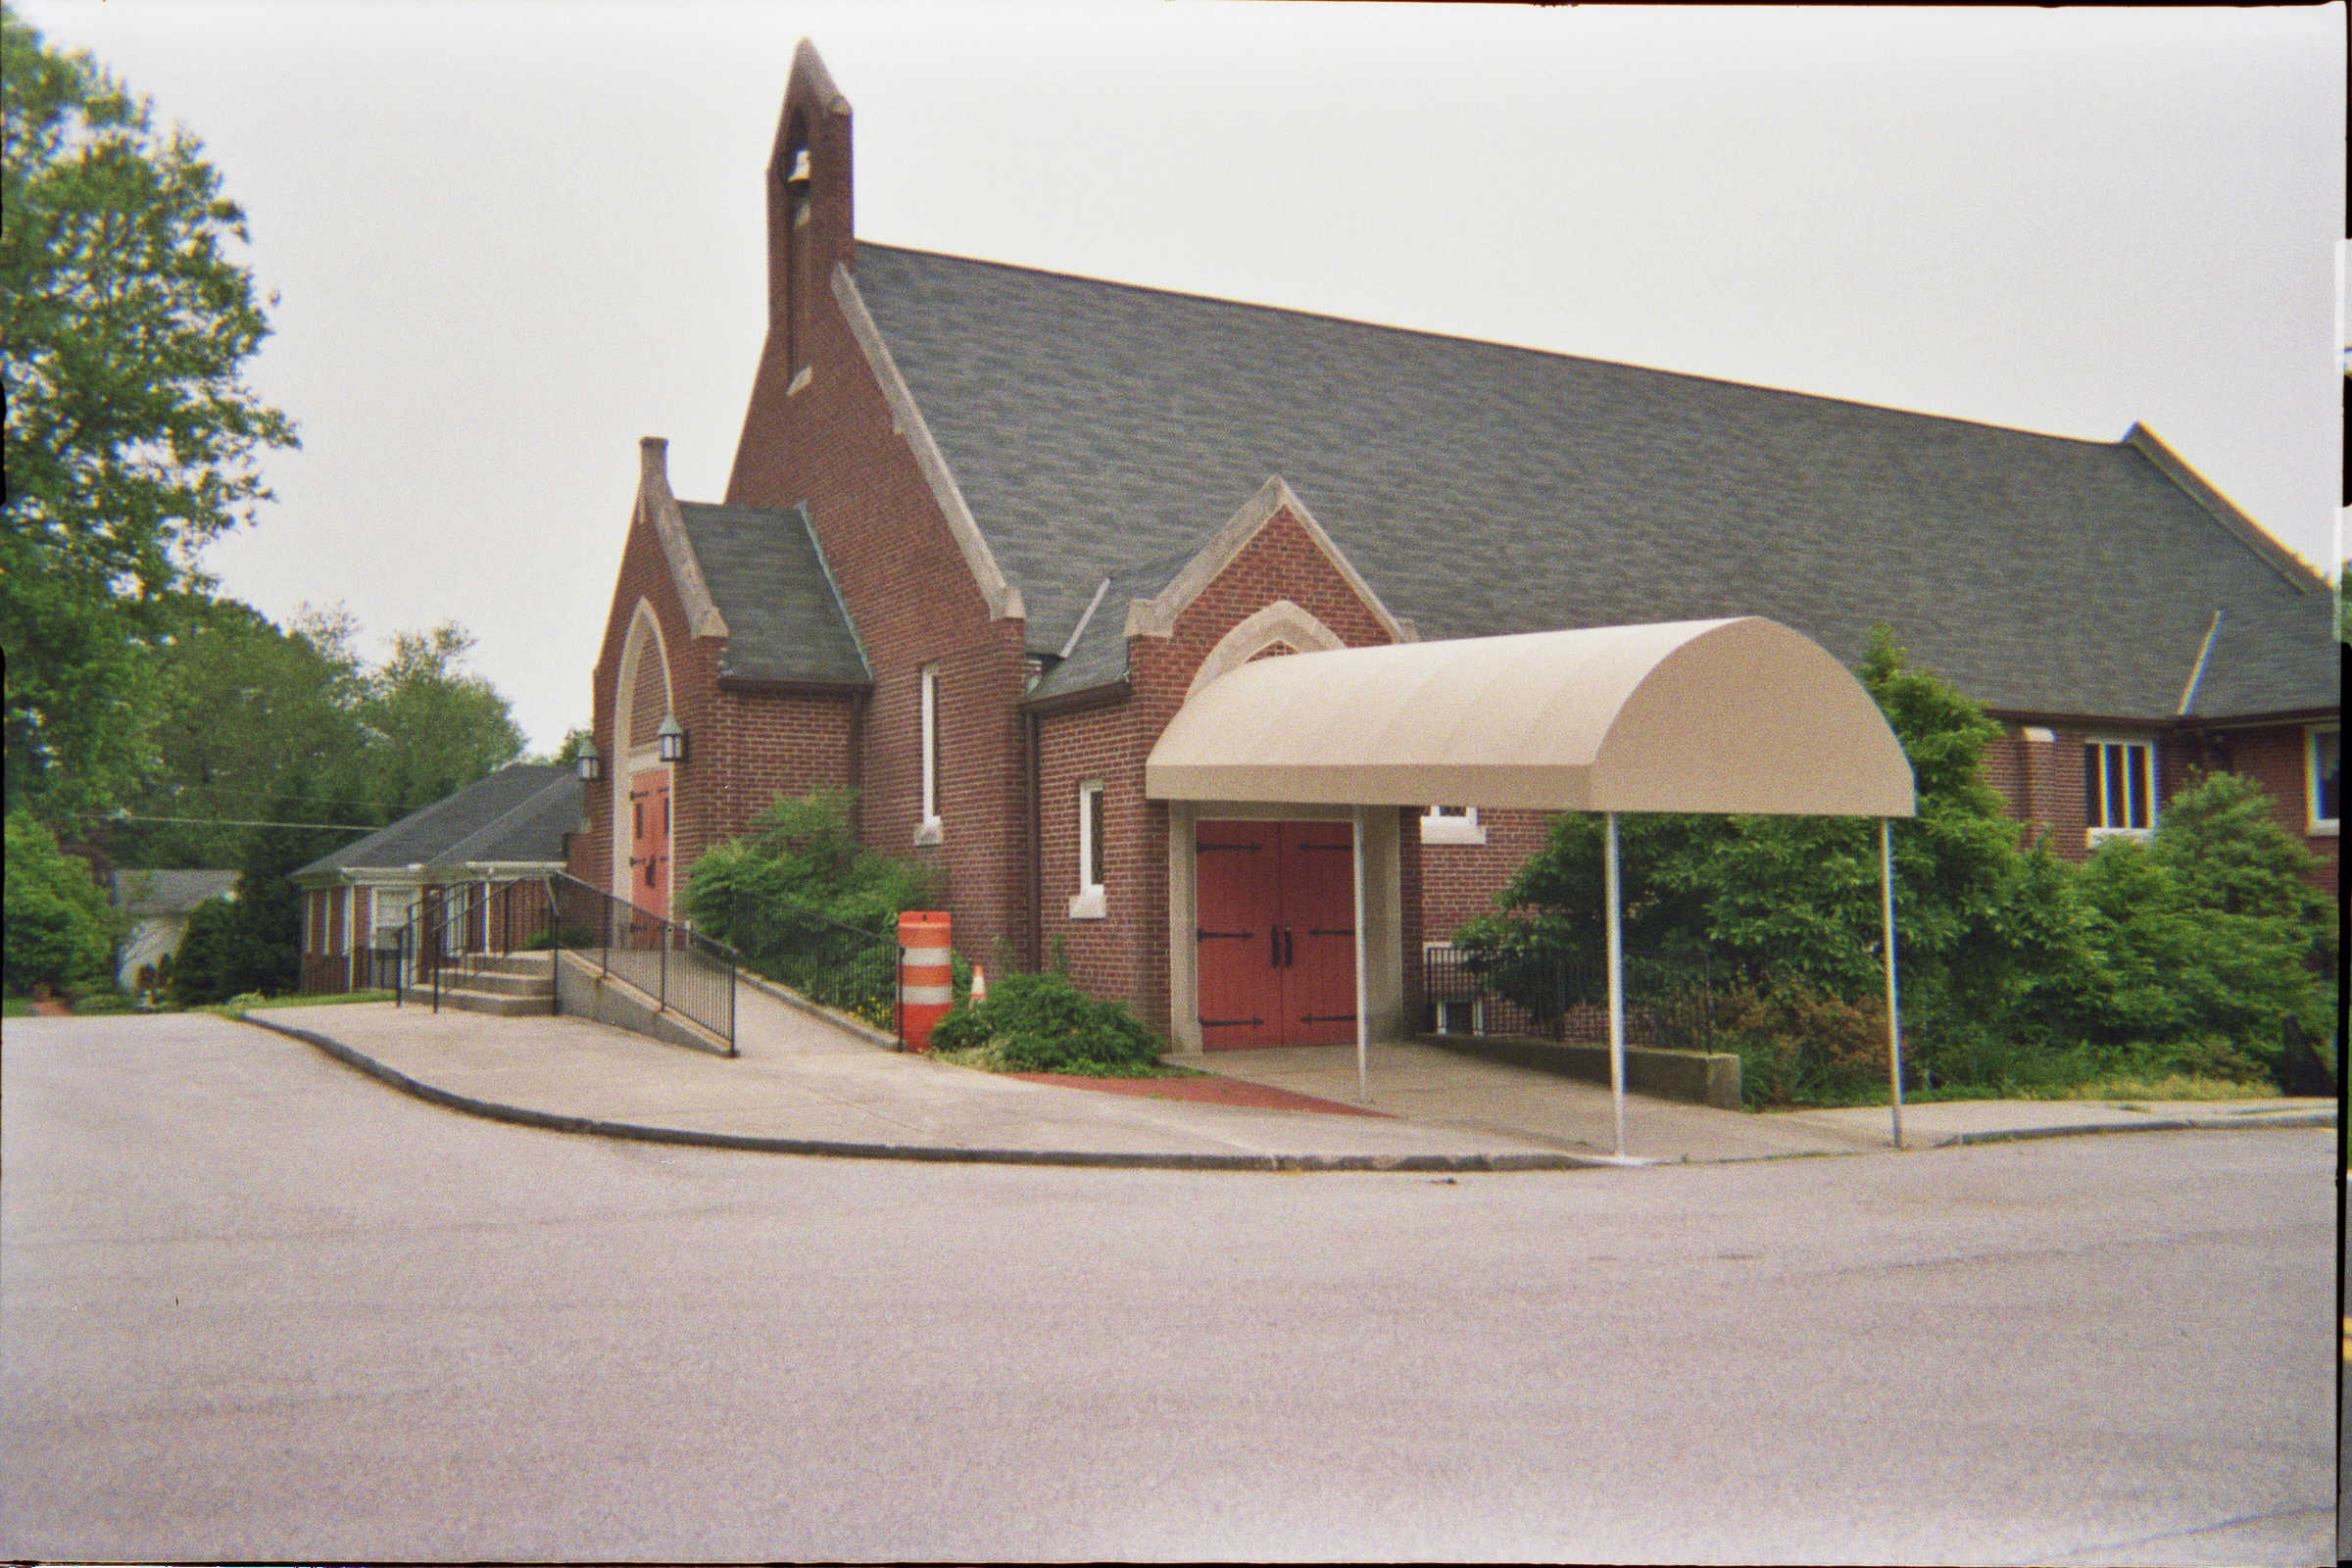 Call A. Hoffman Awning in Baltimore     410-685-5687 Church Awnings in Baltimore Entrance canopy providing shelter into the church